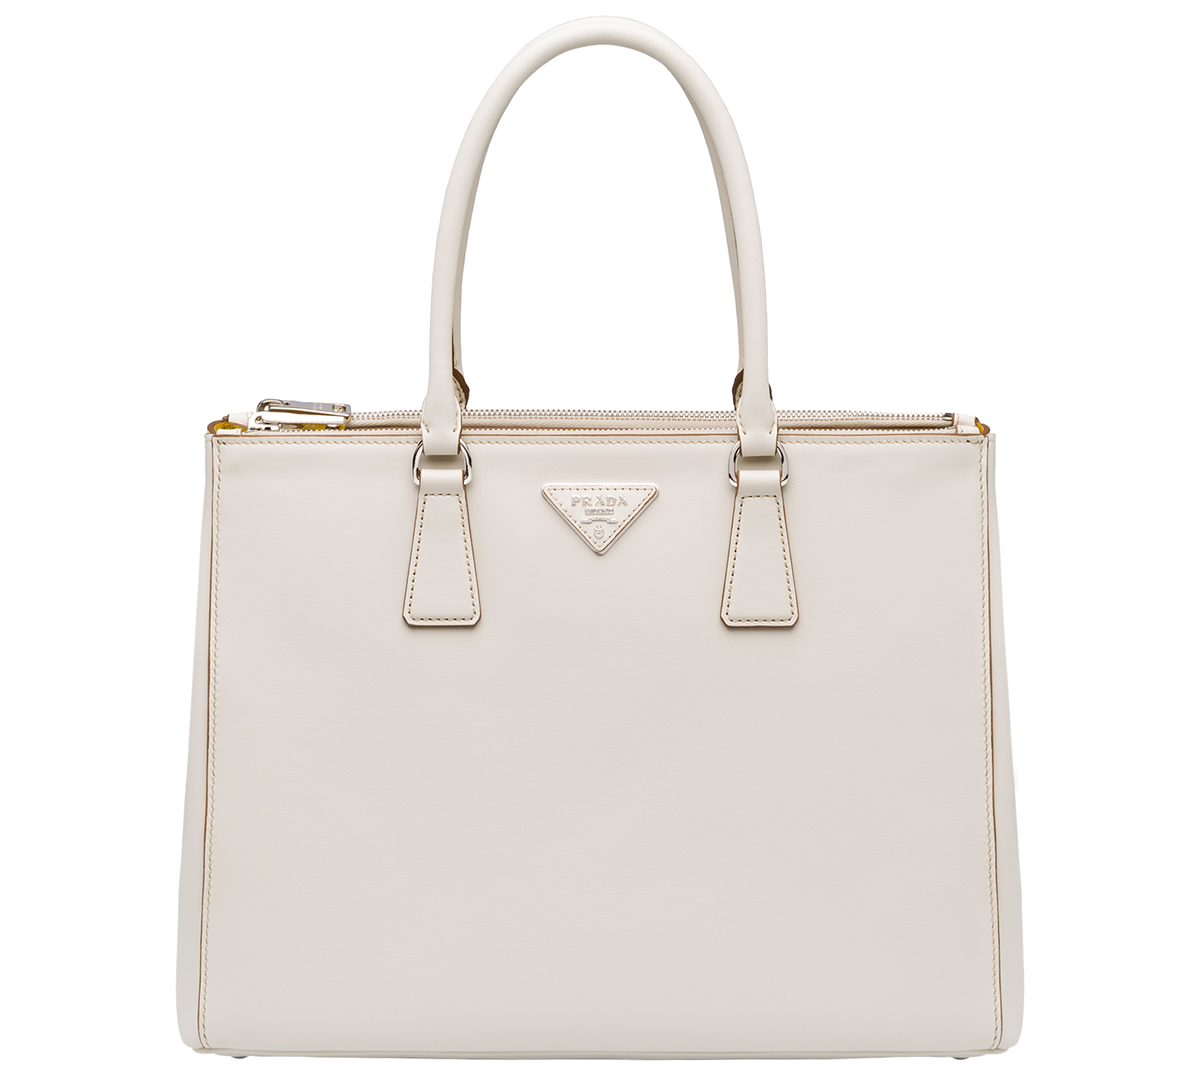 Prada Galleria Bag Chalk White